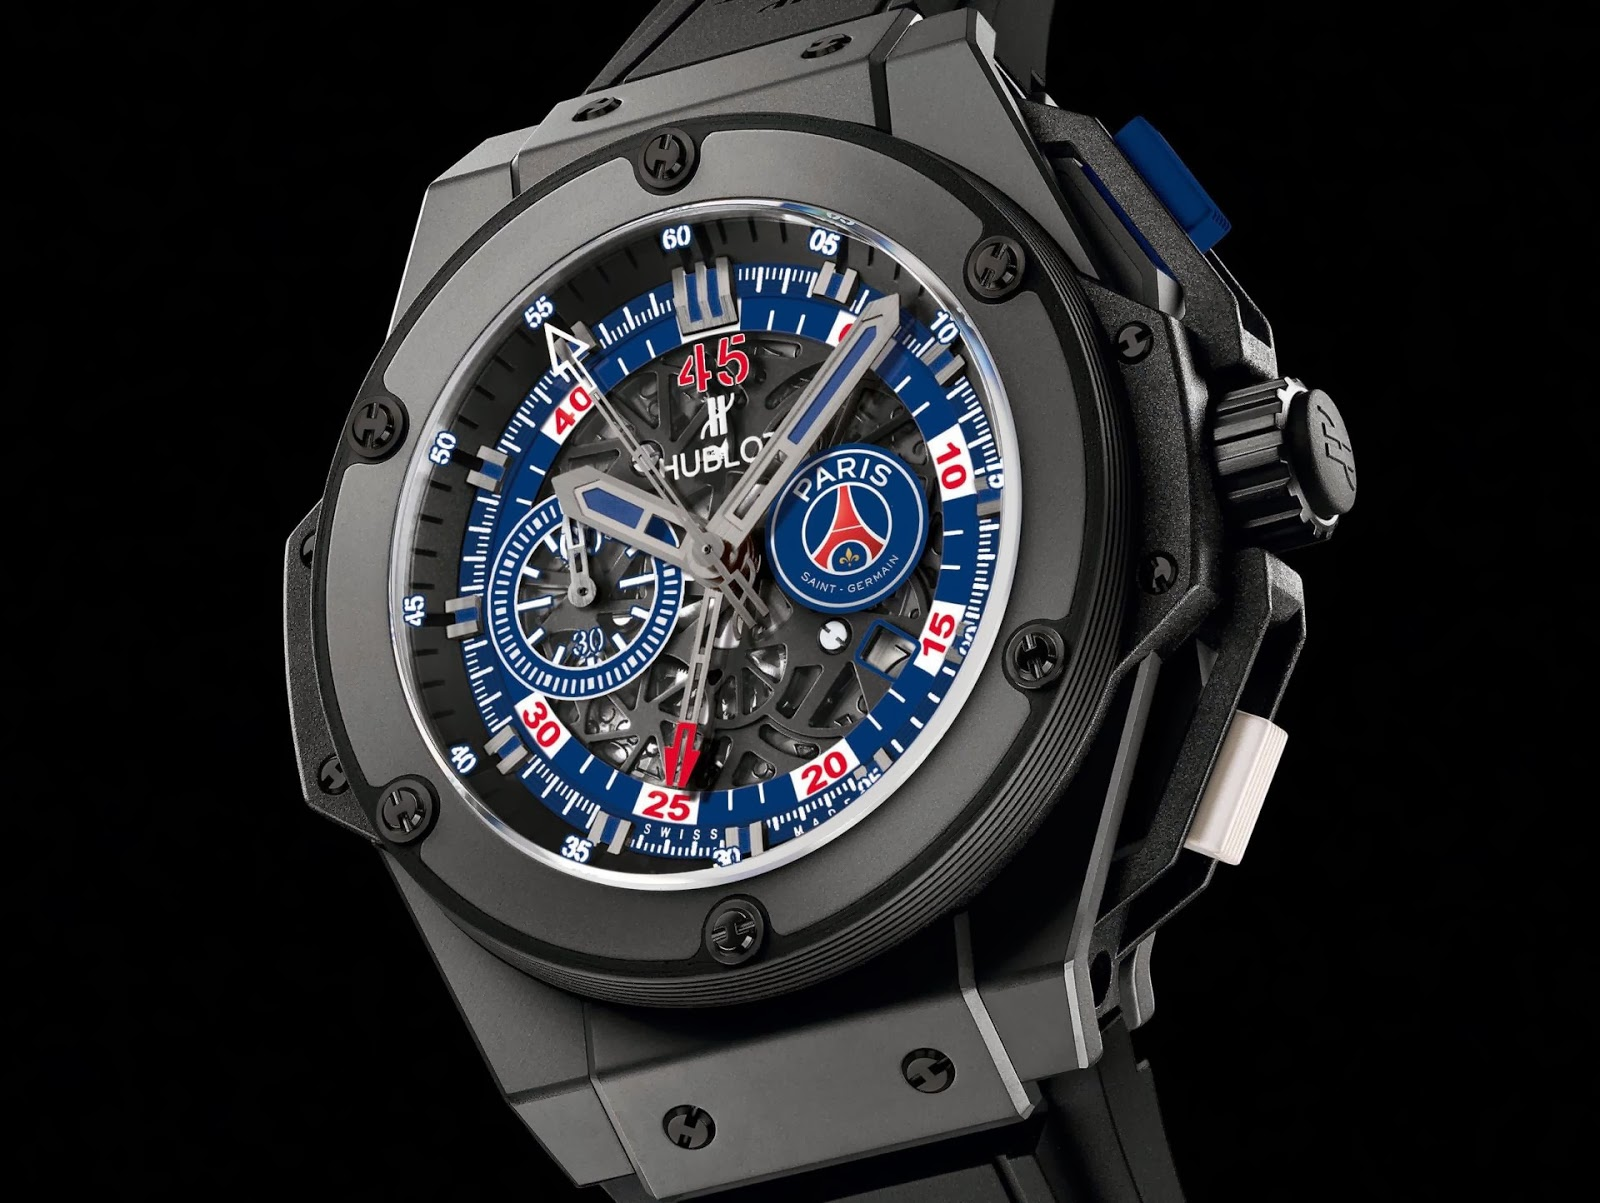 Hublot King Power Paris Saint-Germain watch replica